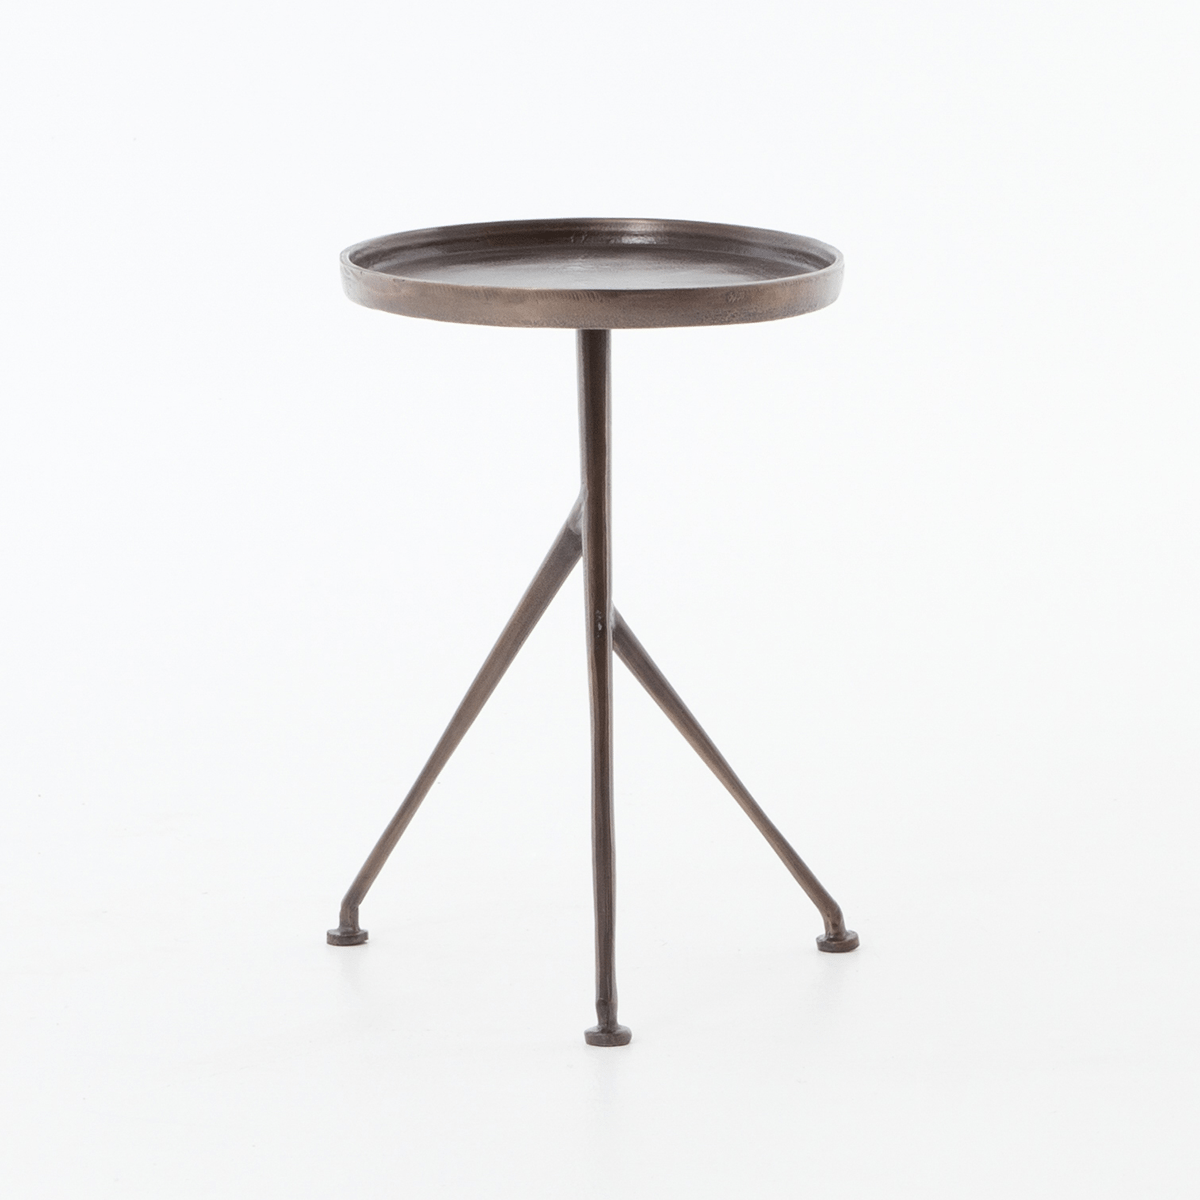 schmidt-accent-table-2-shopceladon